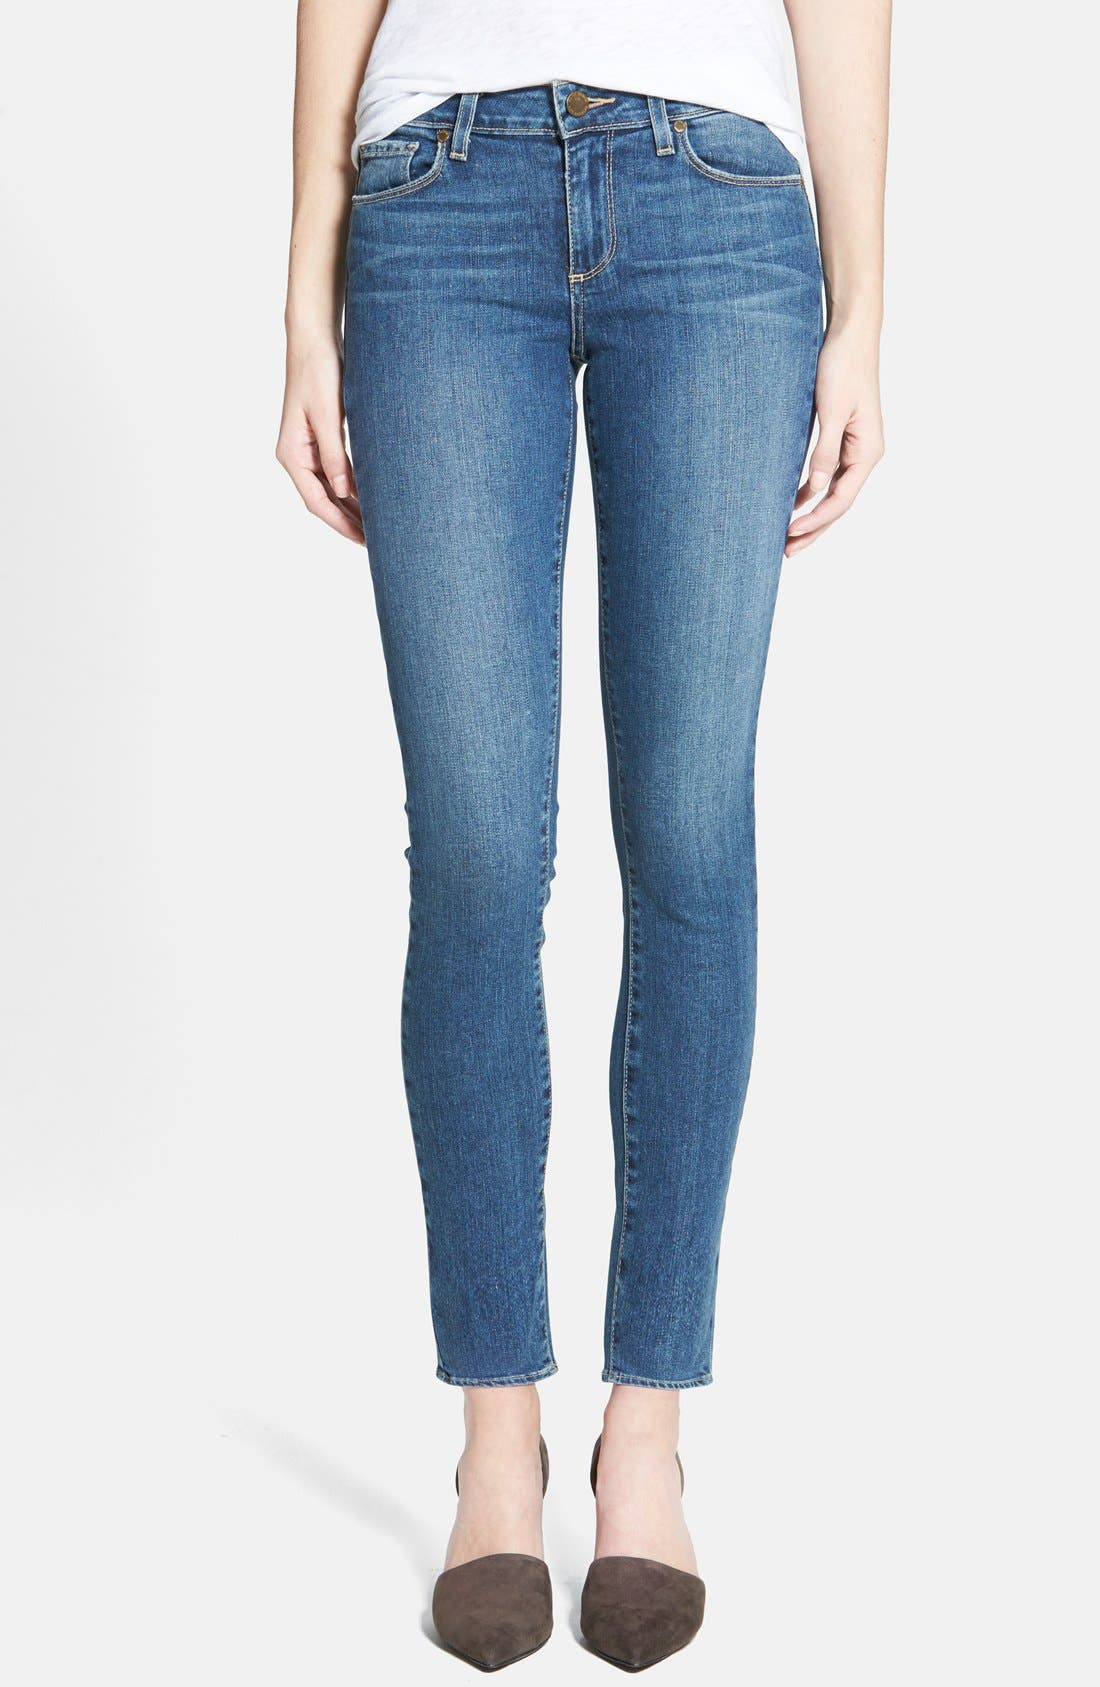 Alternate Image 1 Selected - Paige Denim 'Verdugo' Ultra Skinny Jeans (Miles Blue)